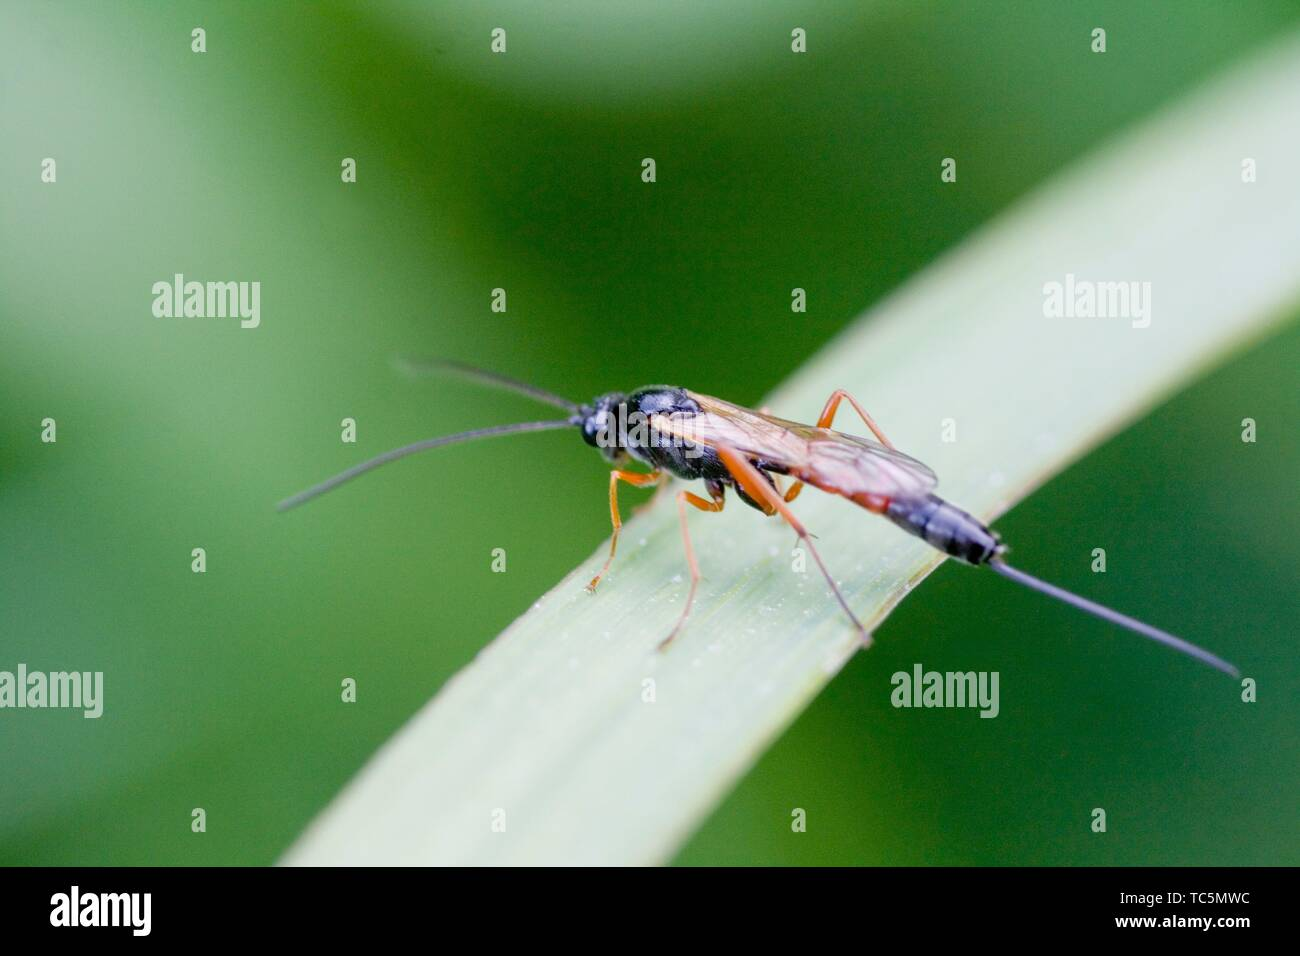 Parasitoid wasp, Ichneumon sp. Black wasp with red wings and legs and extremely long ovipositor. Significant parasitoids of othe invertebrates, - Stock Image